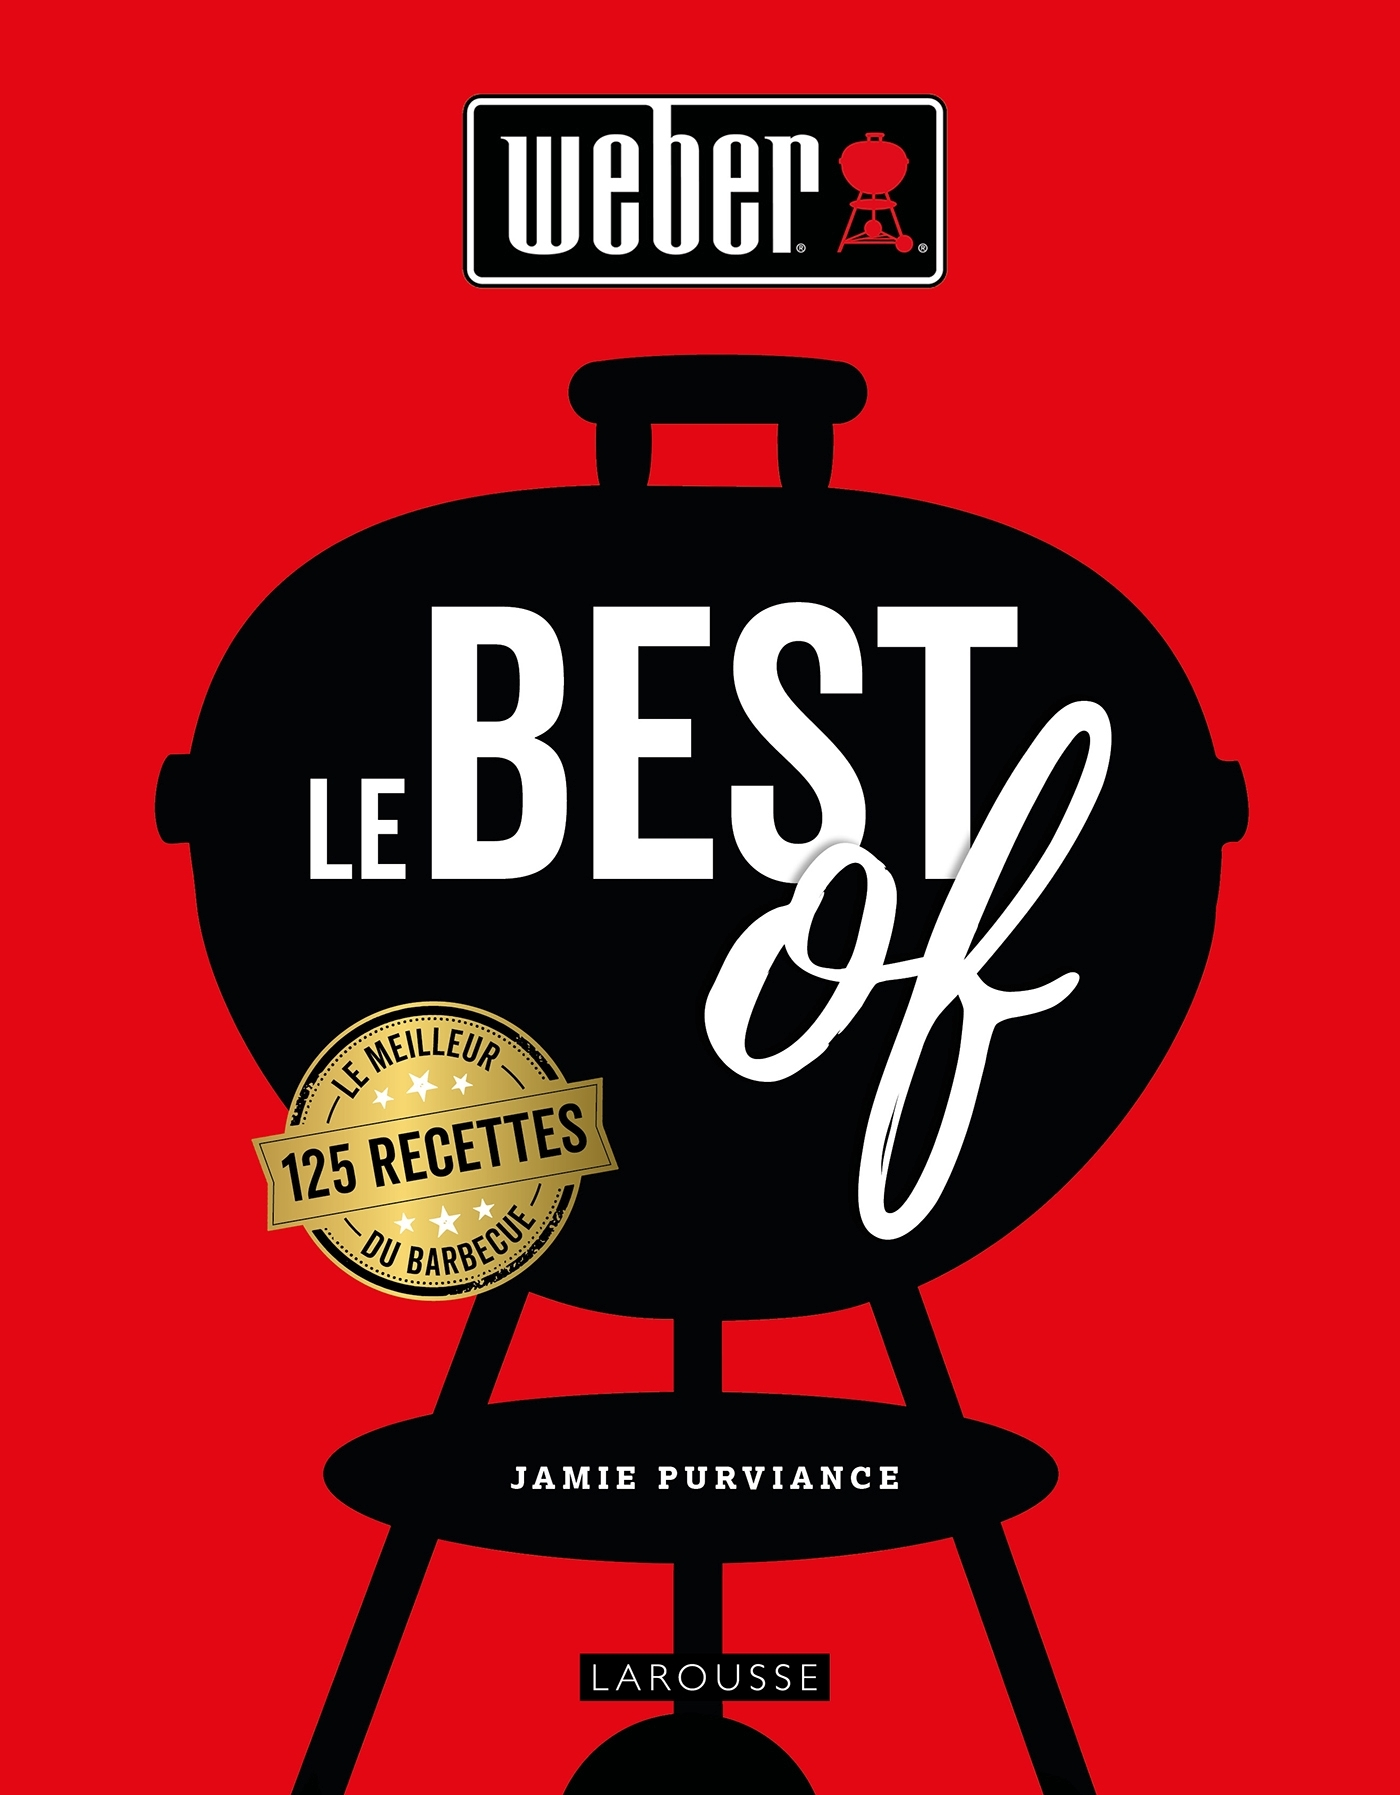 WEBER LE BEST OF